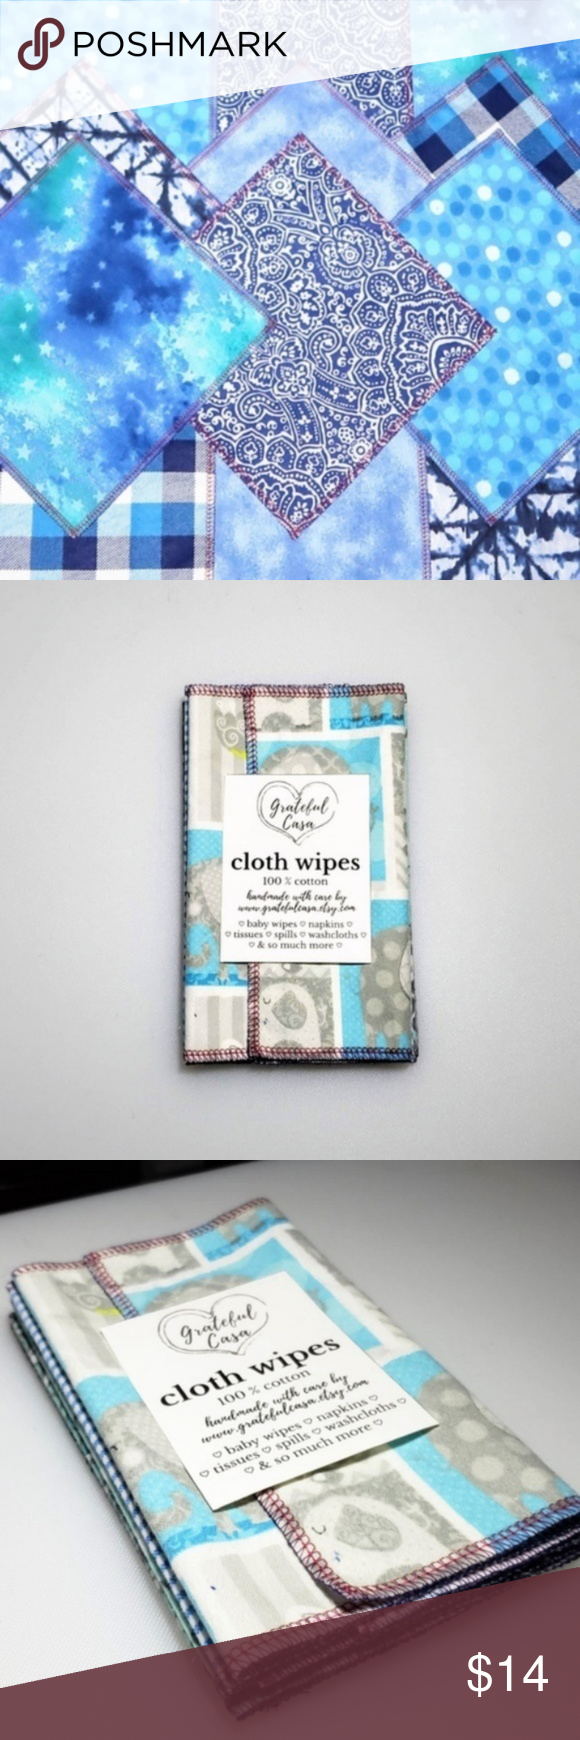 10 reusable CLOTH WIPES in summer blues 10 reusable CLOTH WIPES in summer blues  Each wipe is 1 ply and can be used as reusable baby wipes with water or a diaper solution, face wipes, napkin, washcloths, unpaper, toilet paper, etc.  Each wipe is approximately 7x7  100% cotton flannel ♡ flannel becomes more absorbent after the first few washes ♡  Edges are serged for durability and to prevent fraying.   Washing instructions: Machine wash warm with like colors, dry in dryer. Wipes are not pre-wa #papernapkins